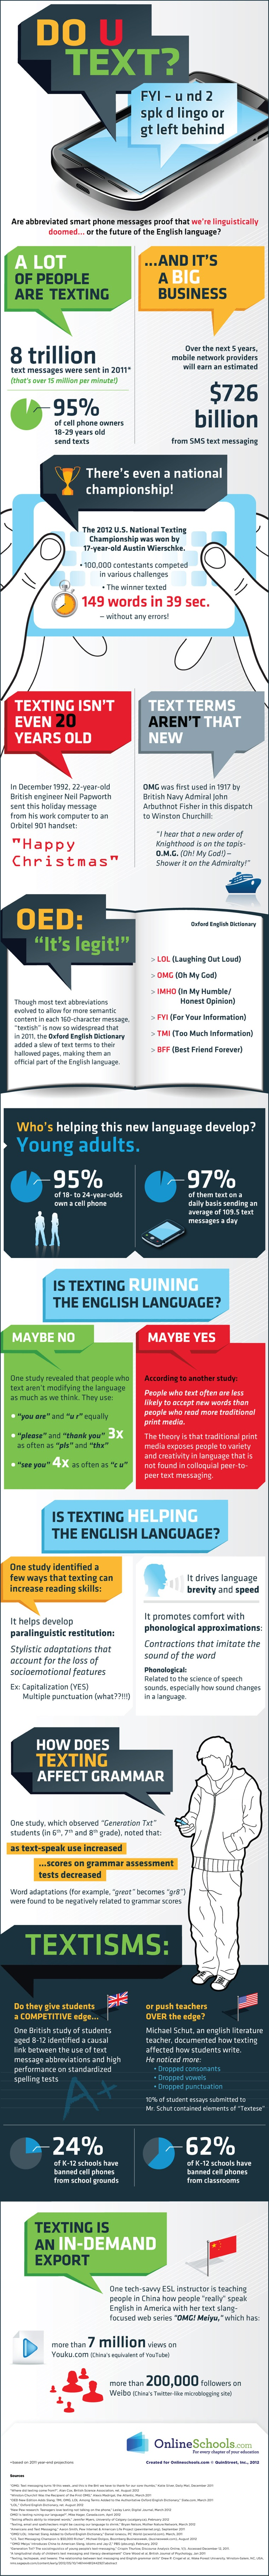 Do you think the english language is changing from text messaging?